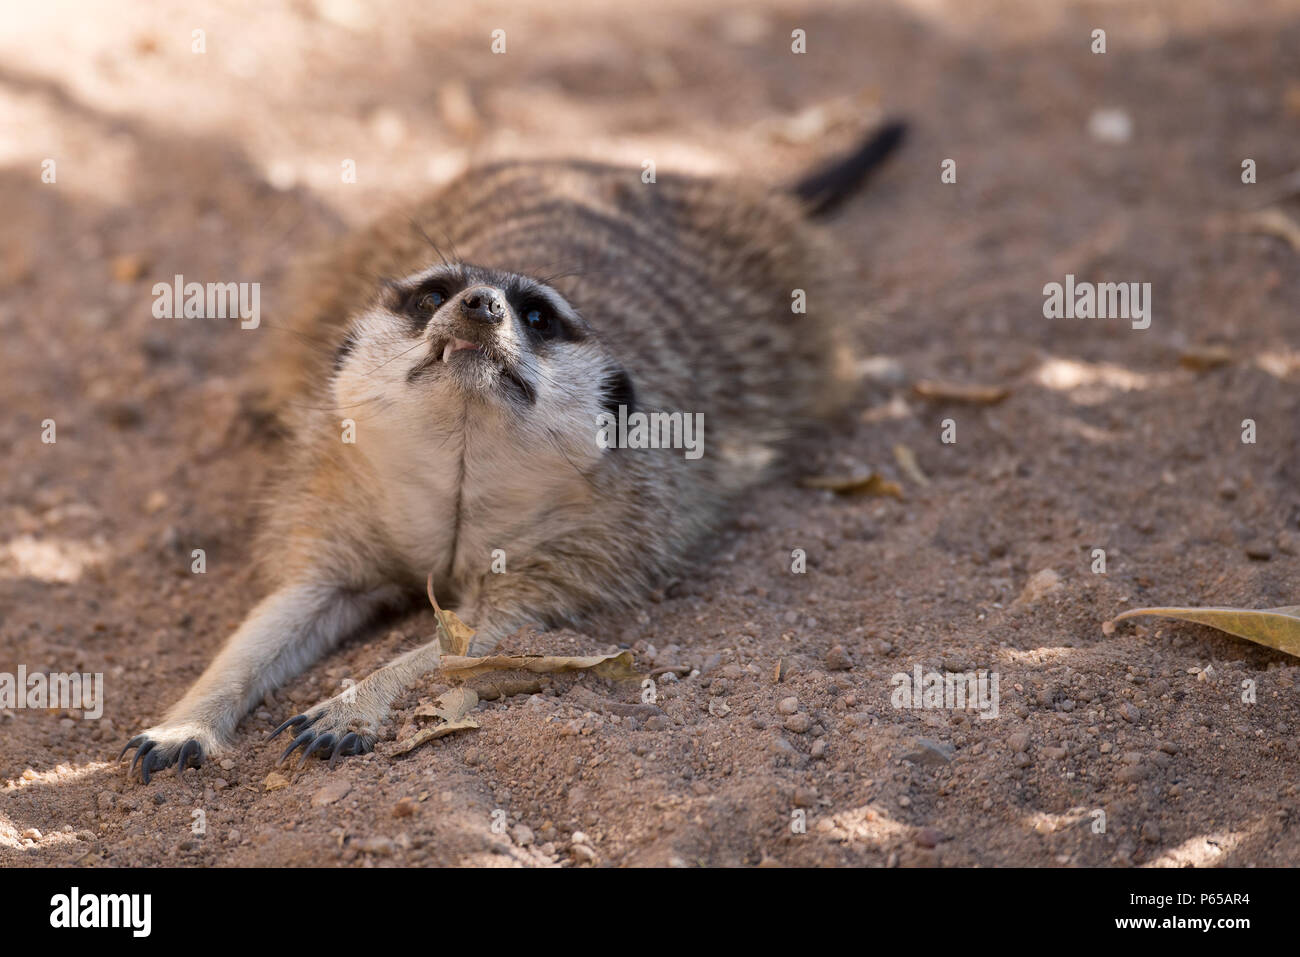 Meerkat with a cheeky grin - Stock Image